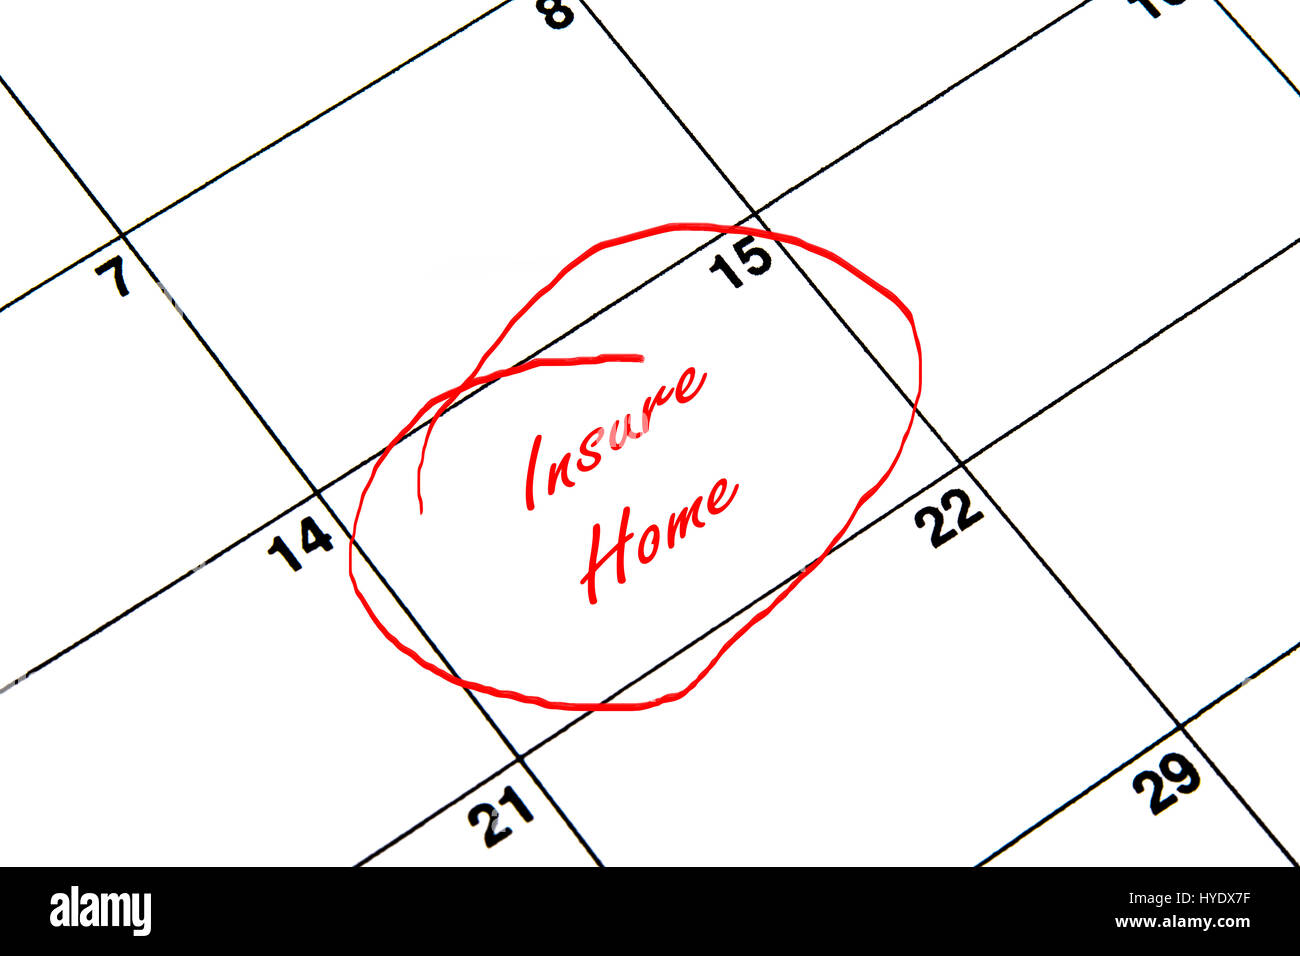 Insure Home Circled on A Calendar in Red - Stock Image